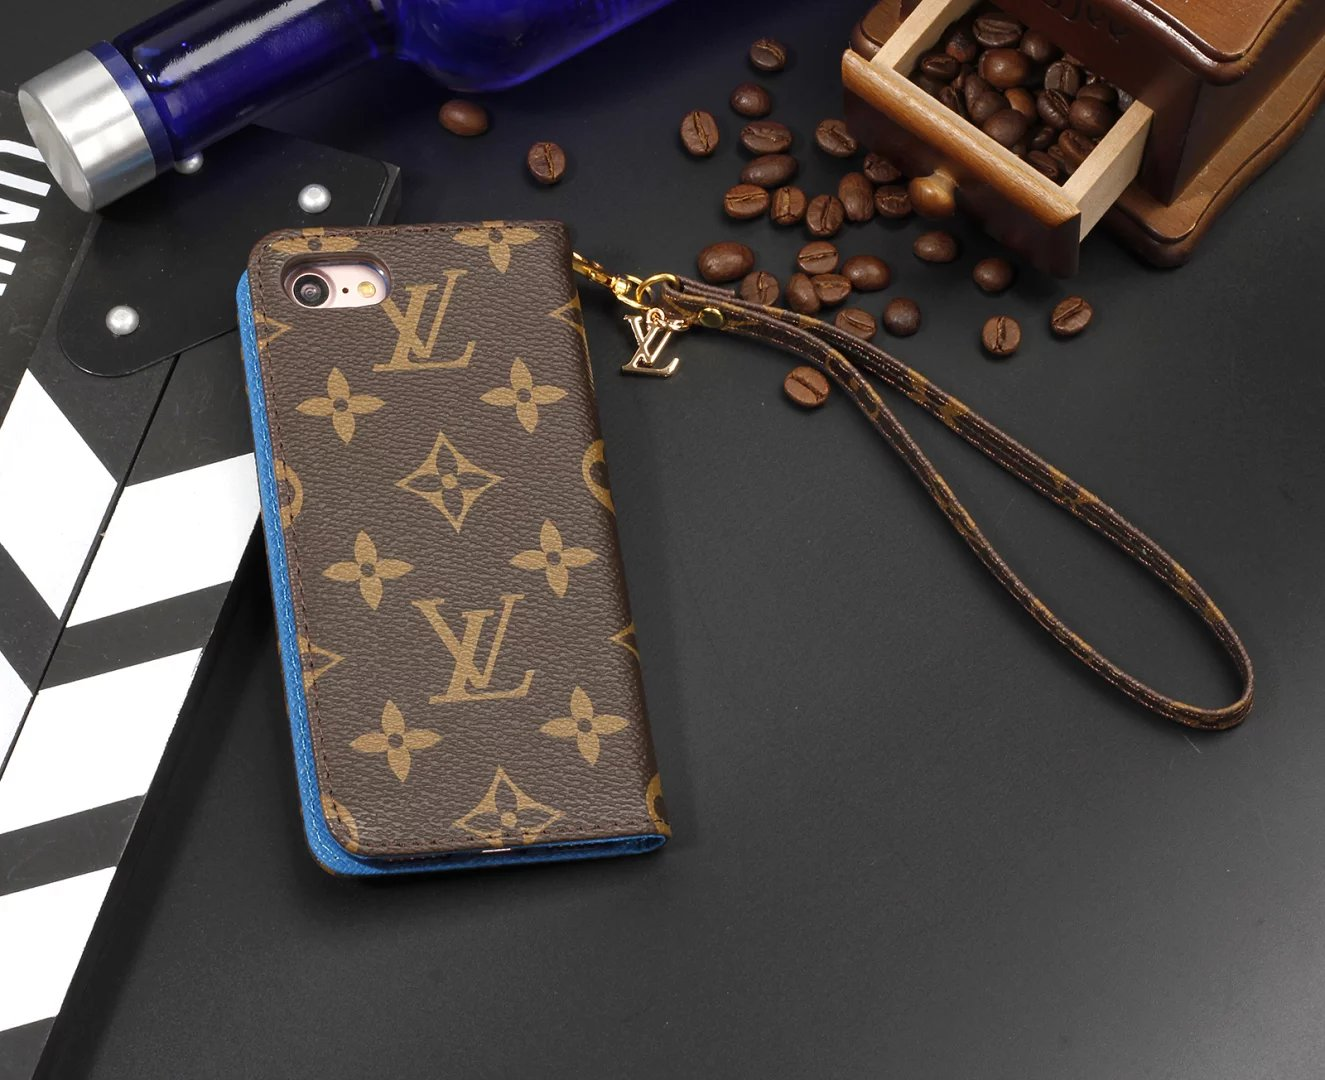 top iphone 8 Plus covers iphone cases for 8 Plus Louis Vuitton iphone 8 Plus case mophie iPhone 8 Plus battery case iphone 8 Plus designer cases cover on cases mophie iphone battery case different iPhone 8 Plus cases iphone protective cover